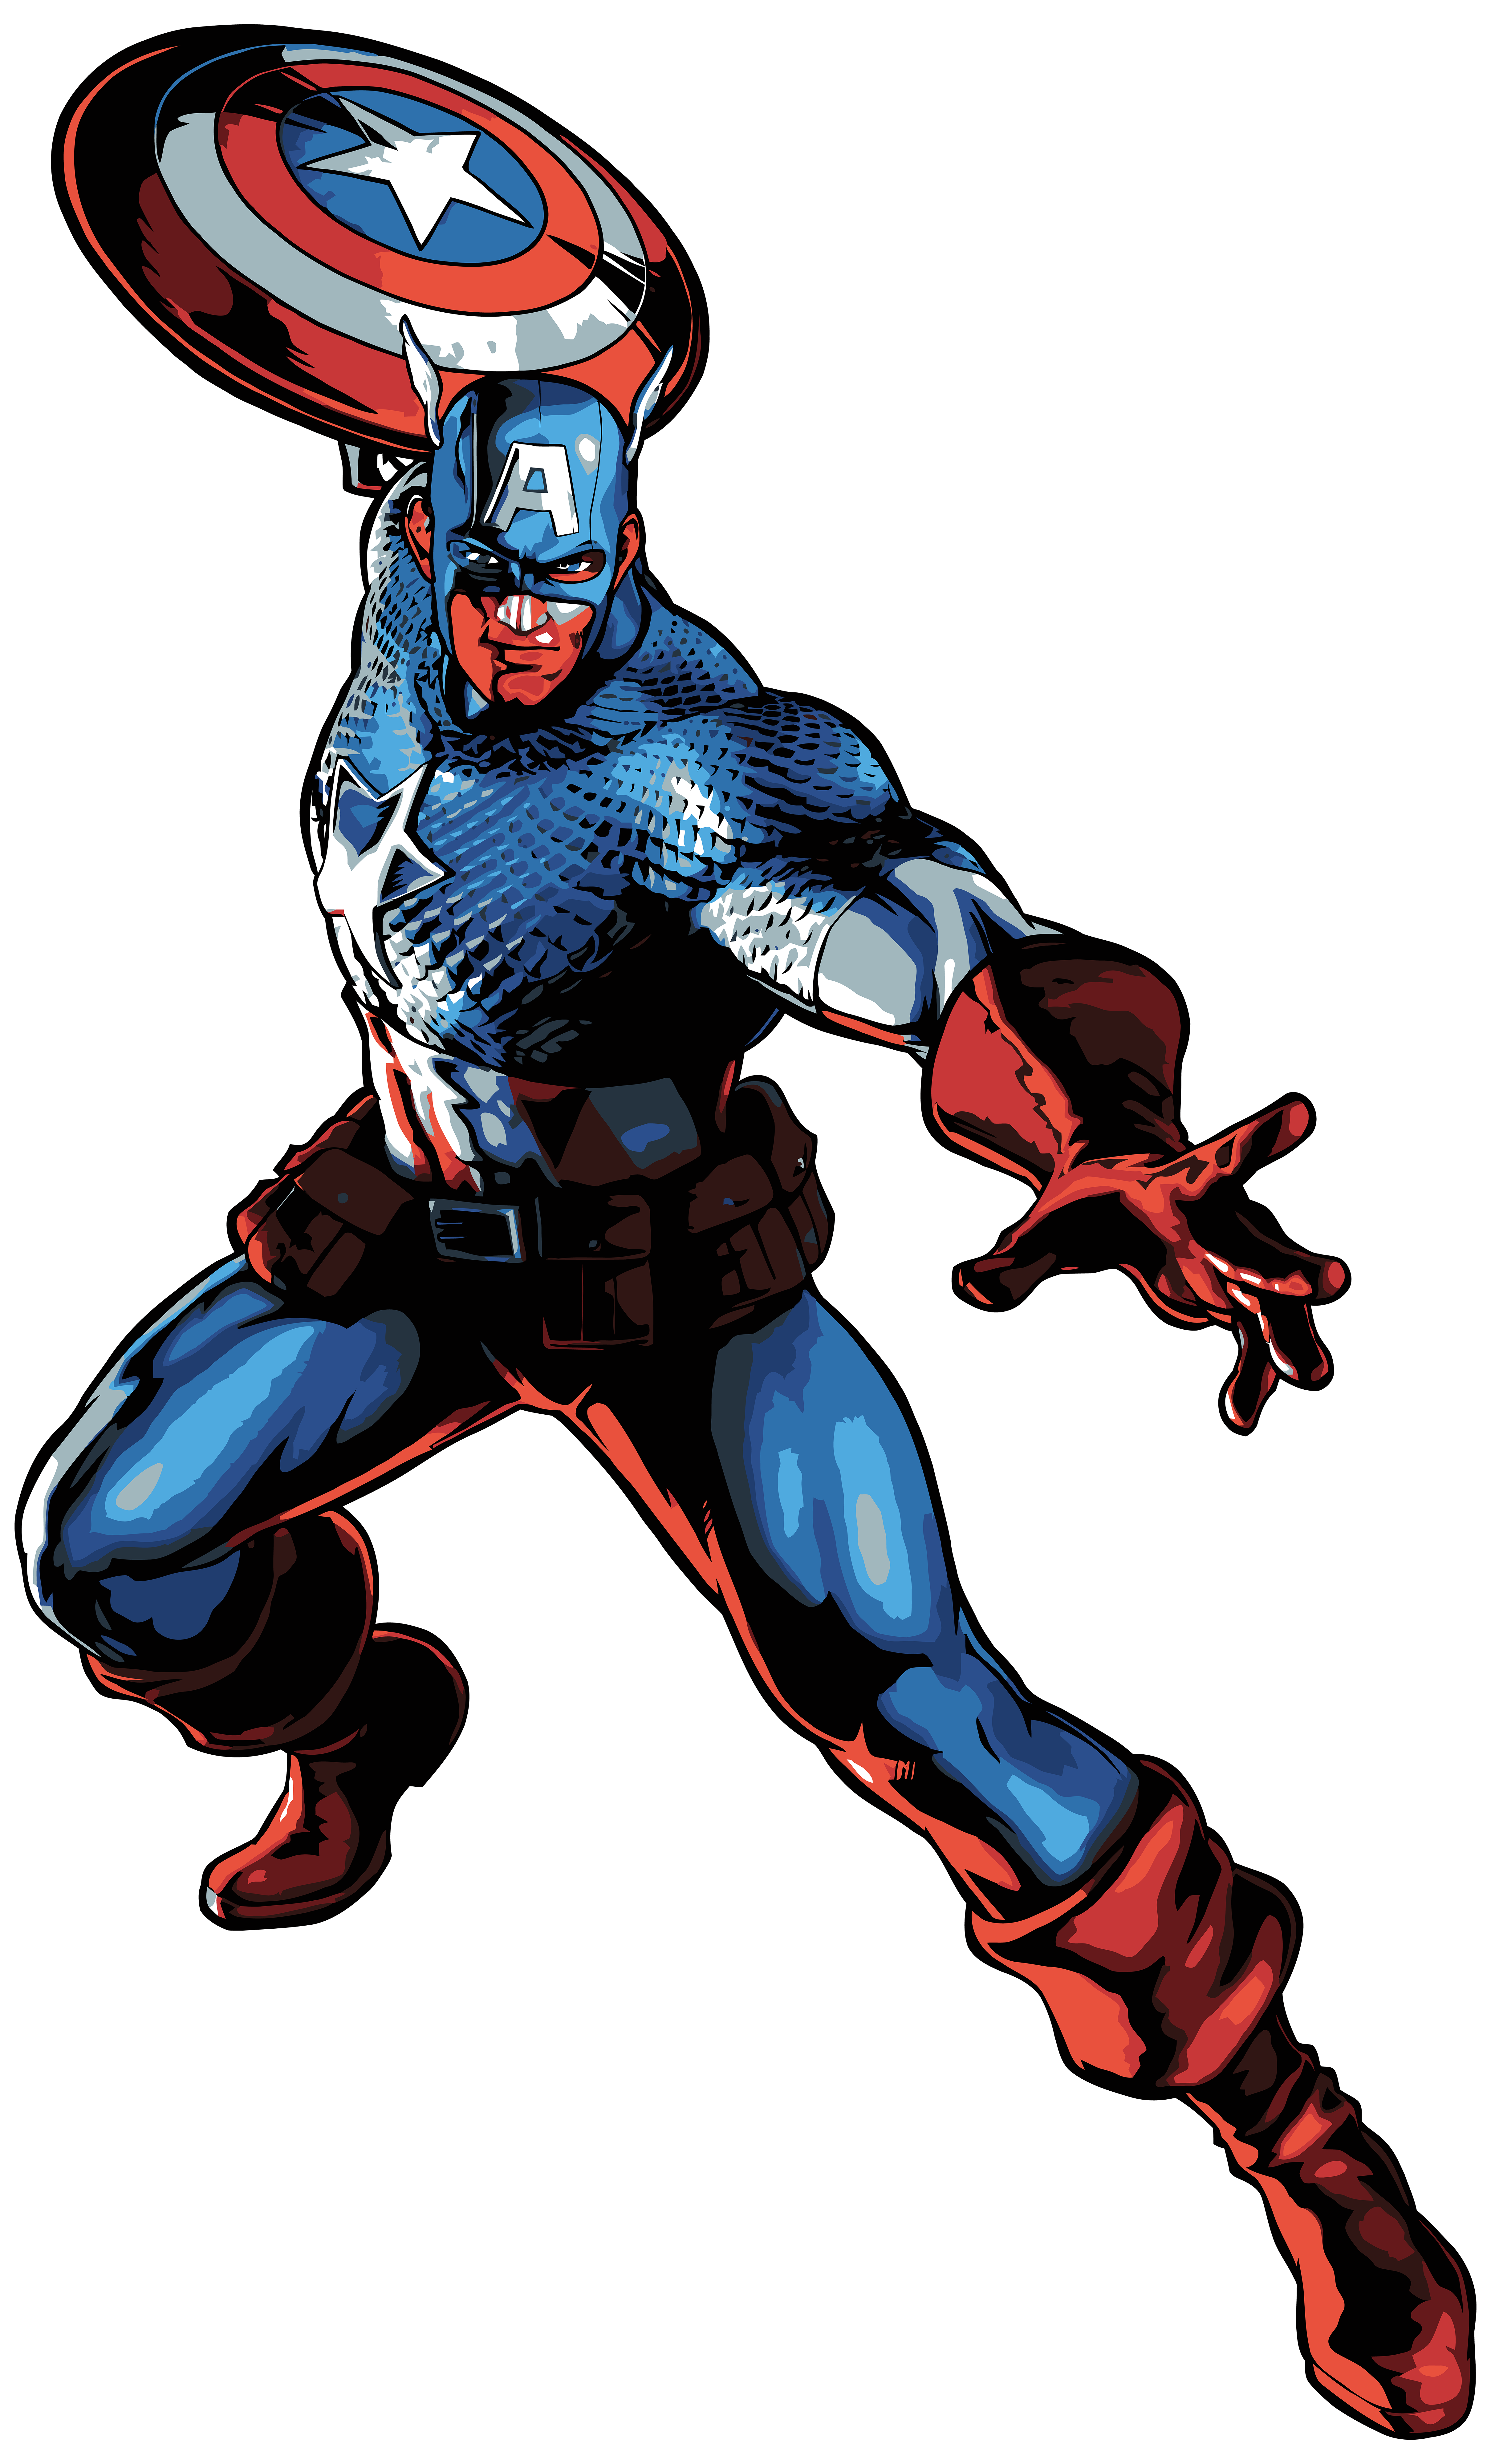 Captain America Cartoon PNG Clip Art Image.